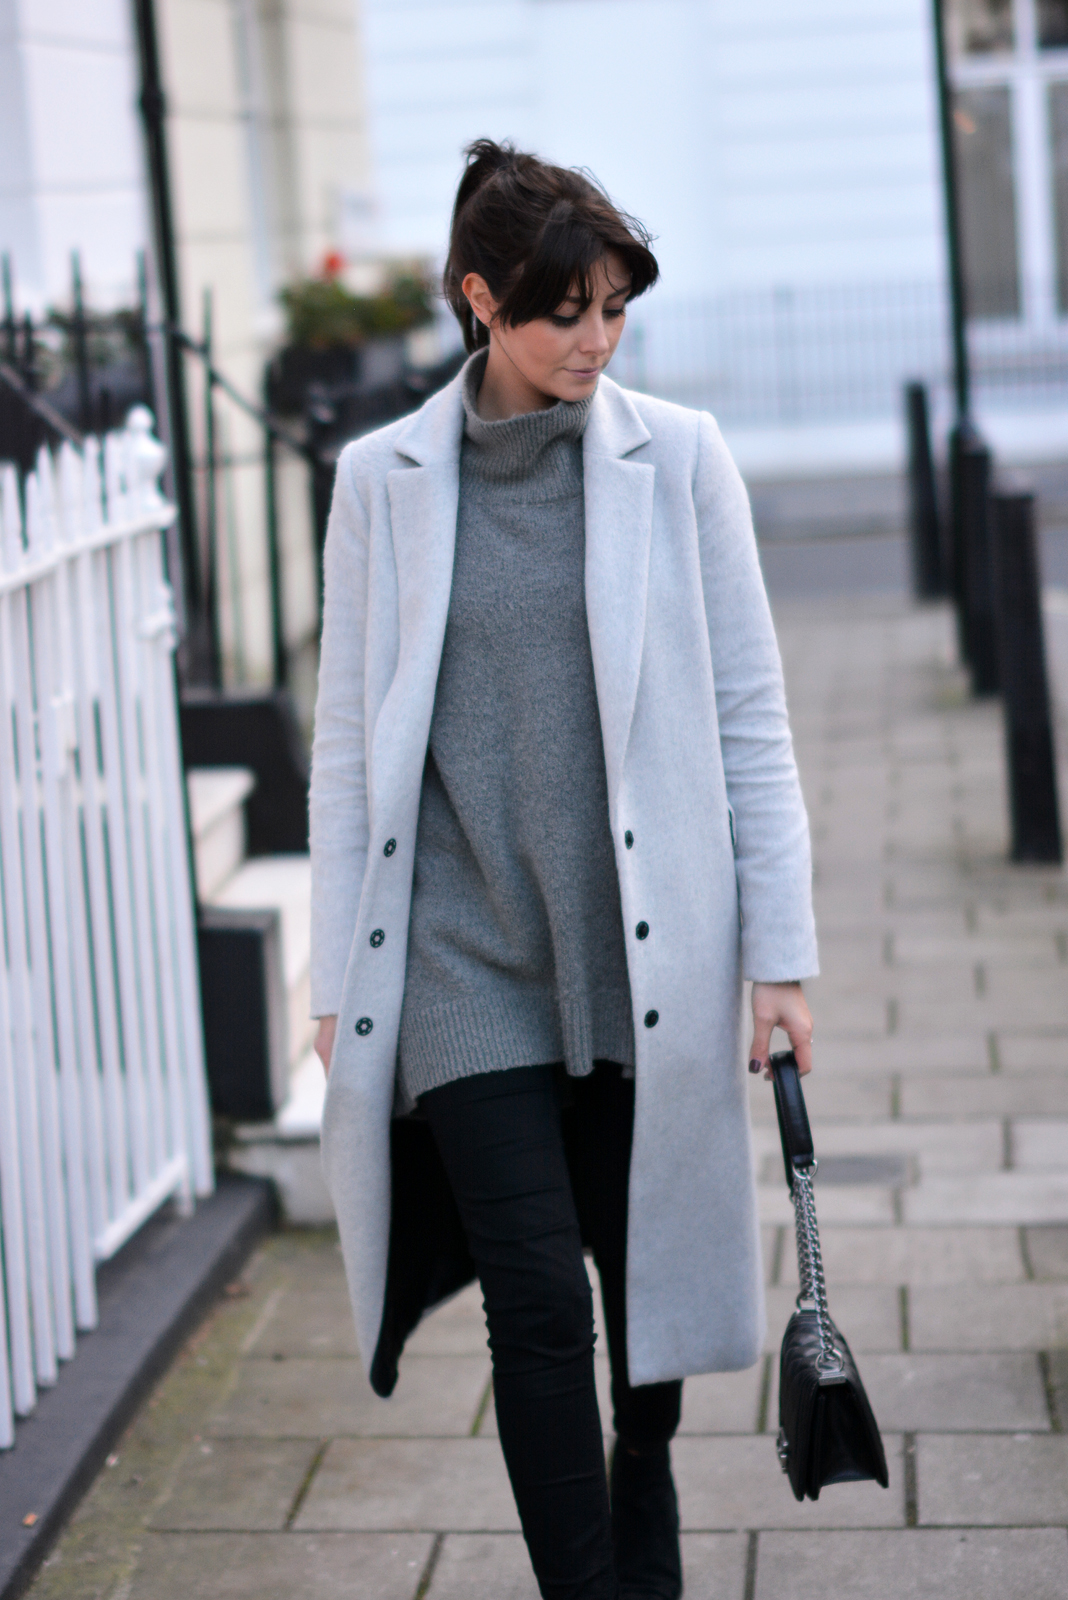 EJSTYLE - Dorothy Perkins long grey mannish coat, Zara high neck jumper sweater, Black skinny jeans, OOTD, winter outfit